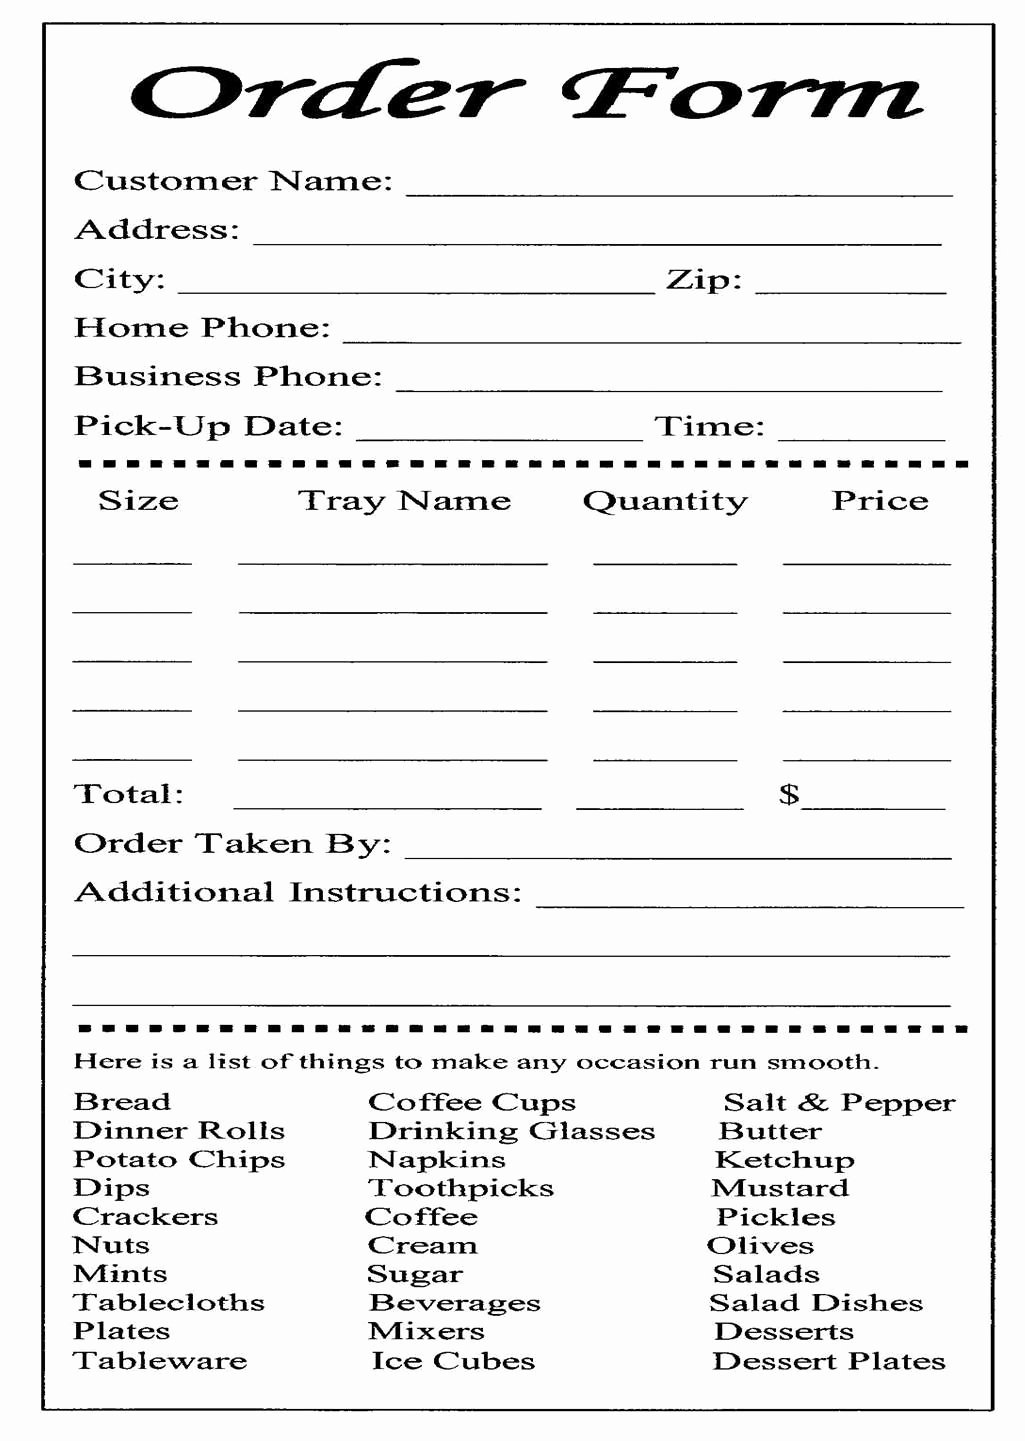 Home Bakery Cake order form Inspirational Cake Ball order form Templates Free